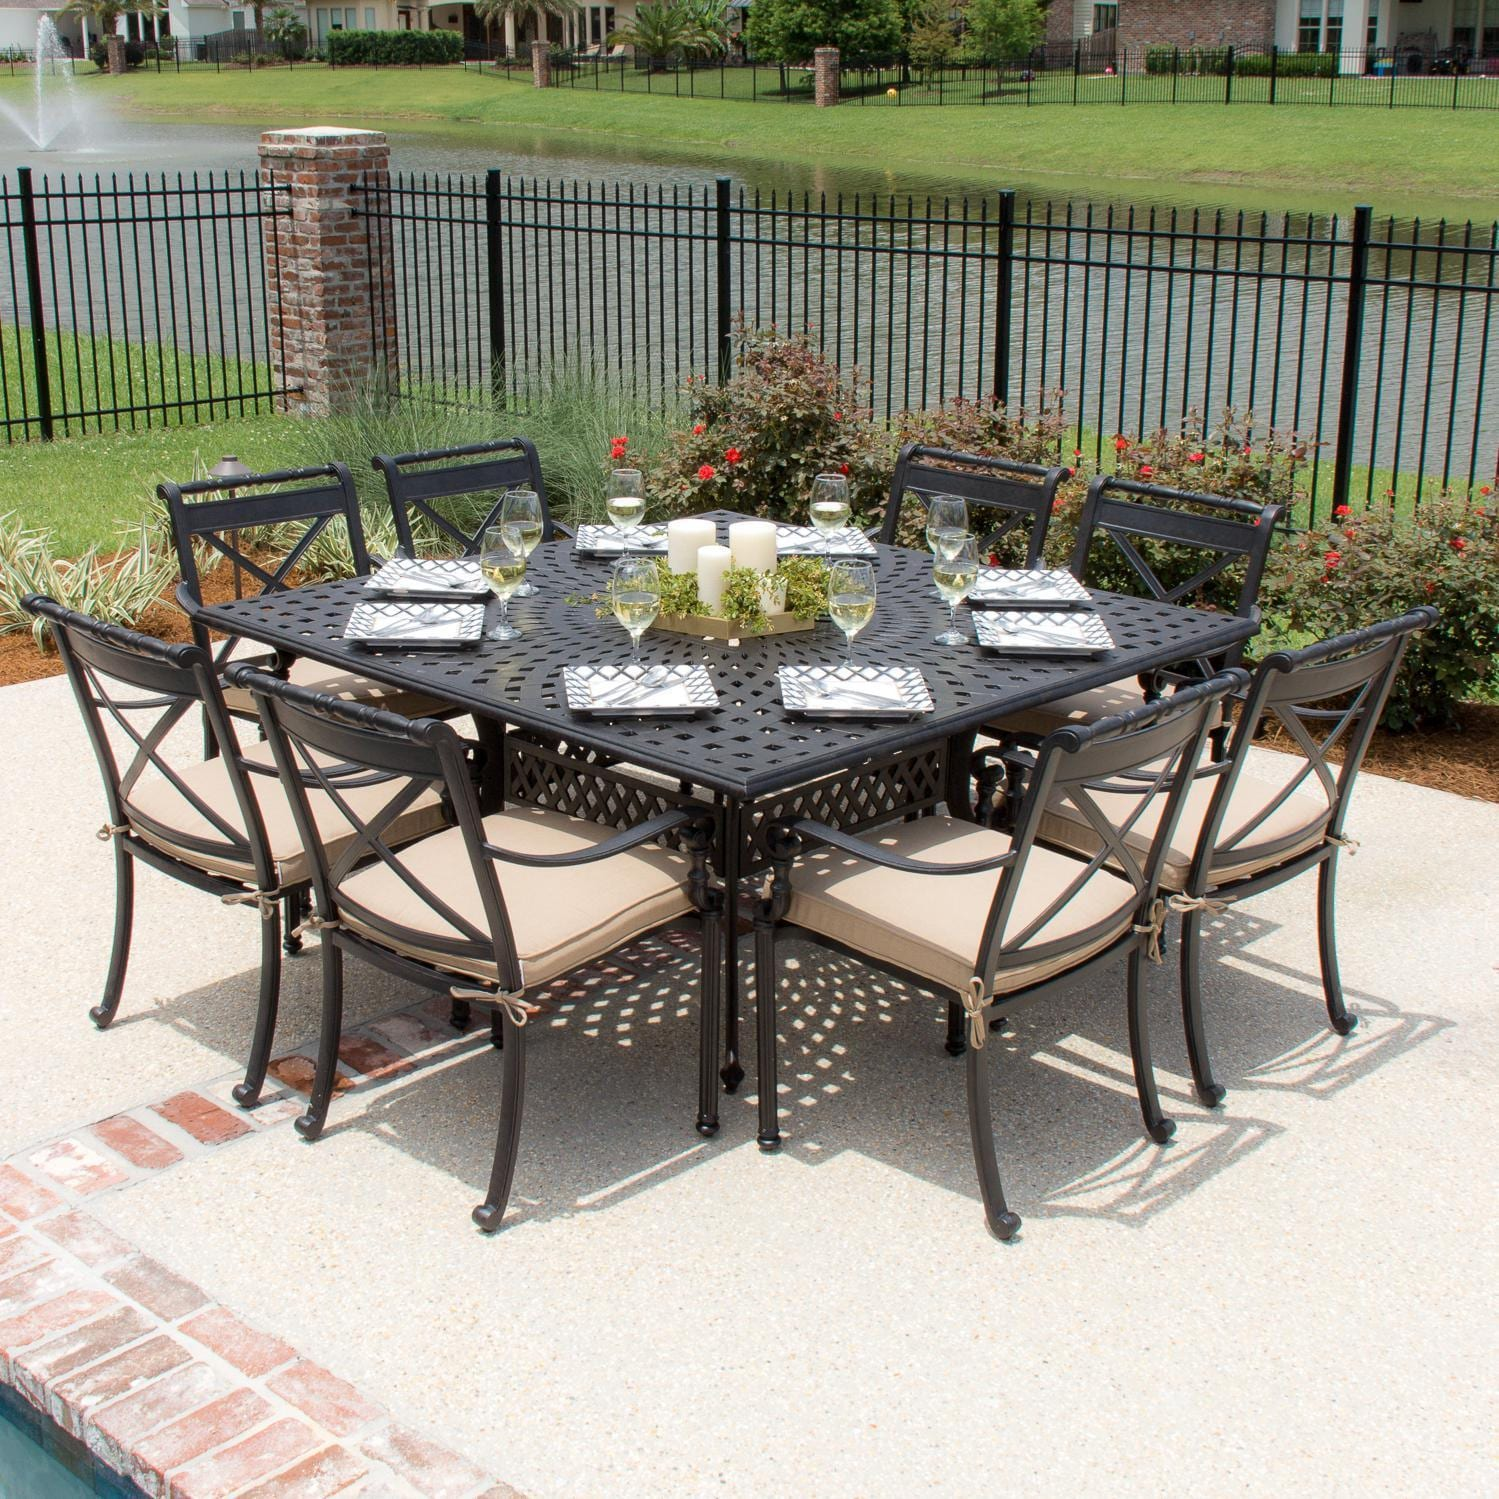 Carrolton 8 Person Cast Aluminum Patio Dining Set With Square Table Overstock 10332256